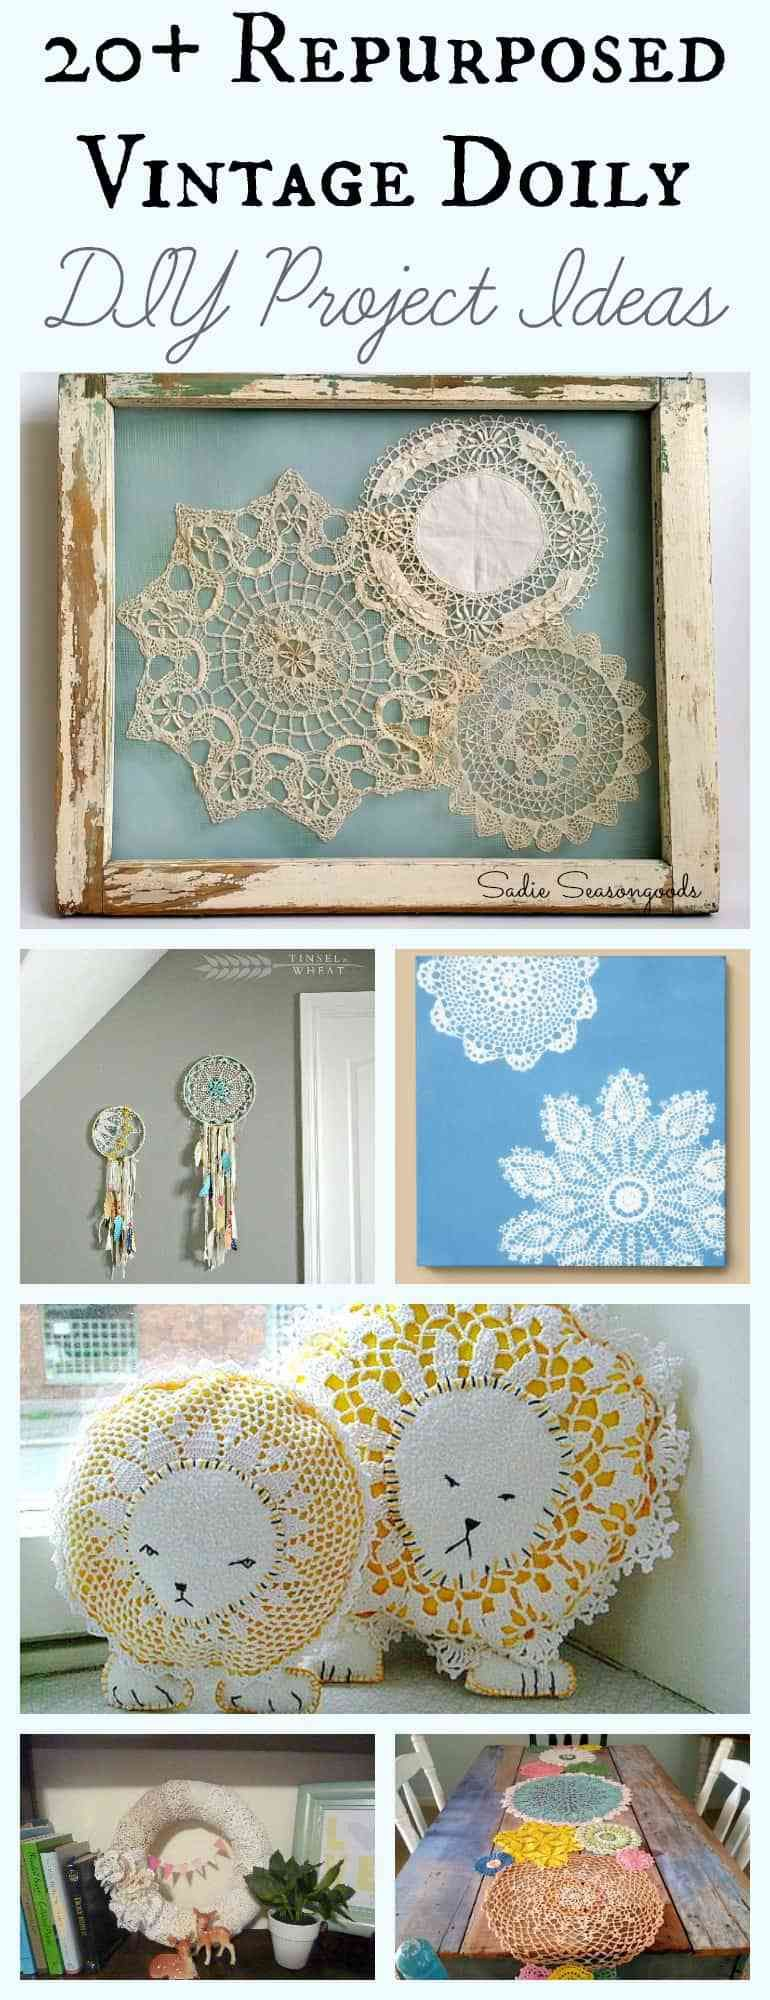 Doily Crafts And Upcycling Ideas For Vintage Doilies As Granny Chic Decor Doilies Crafts Doilies Diy Diy Craft Projects